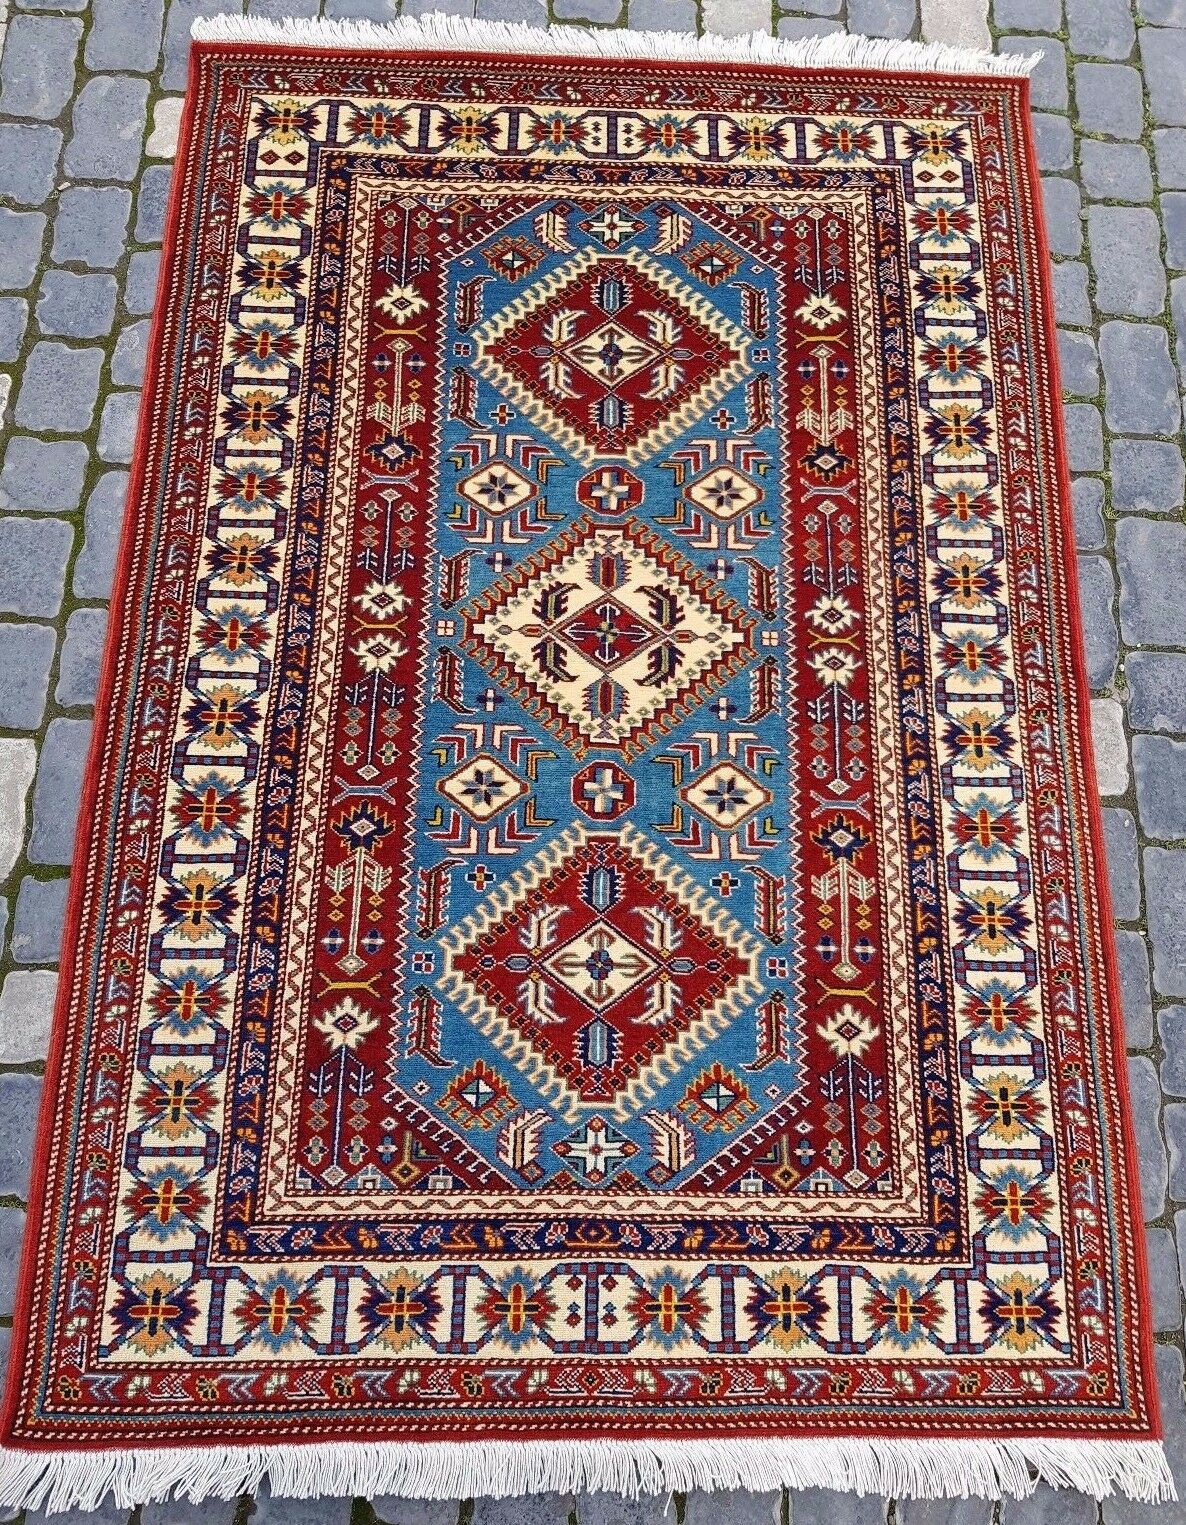 4'x6' Hand Knotted Rug Carpet Handmade Wool New Traditional Old Old Old Antique Oriental e3c955